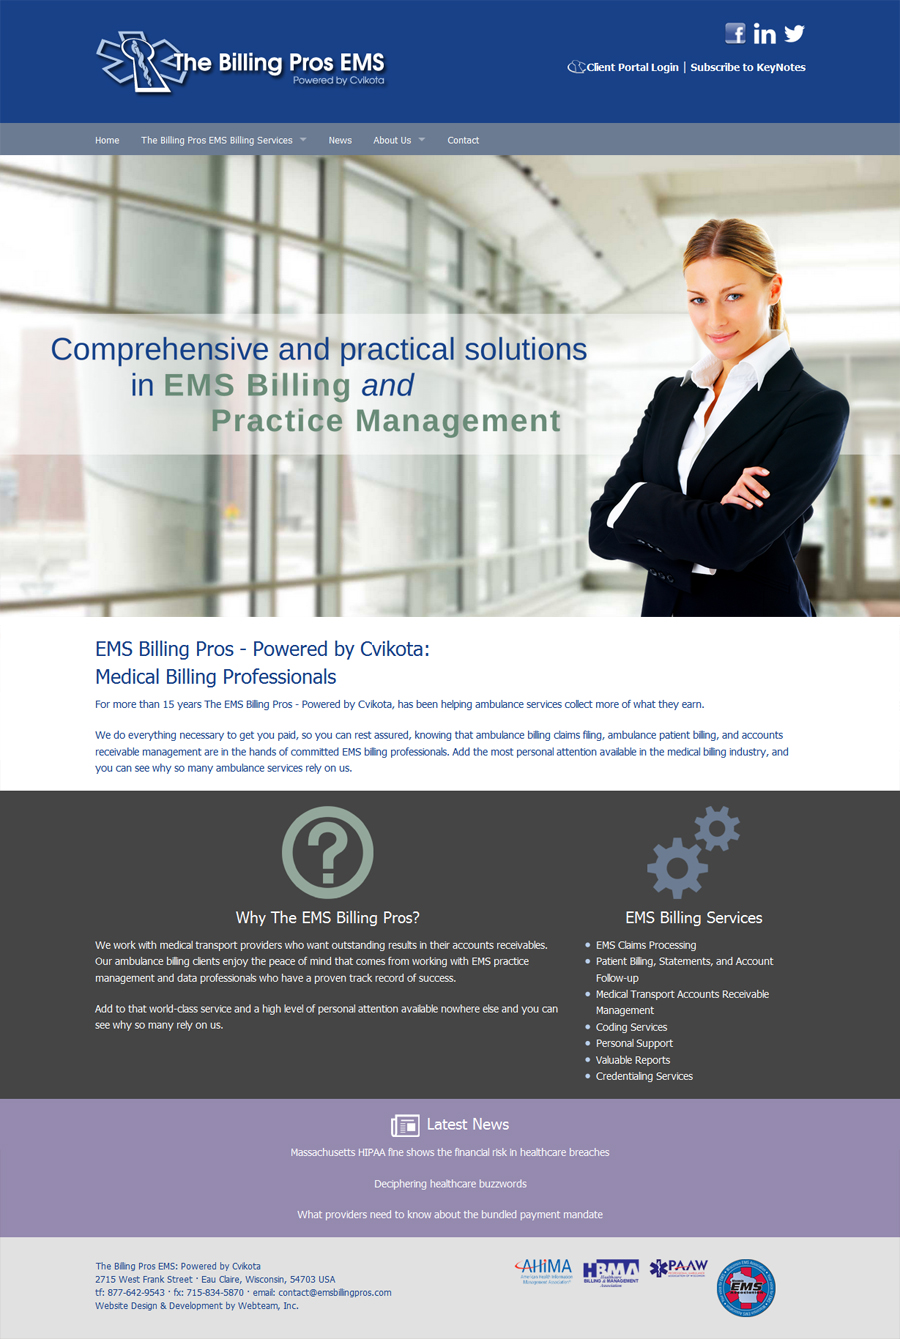 The Billing Pros EMS: Powered by Cvikota